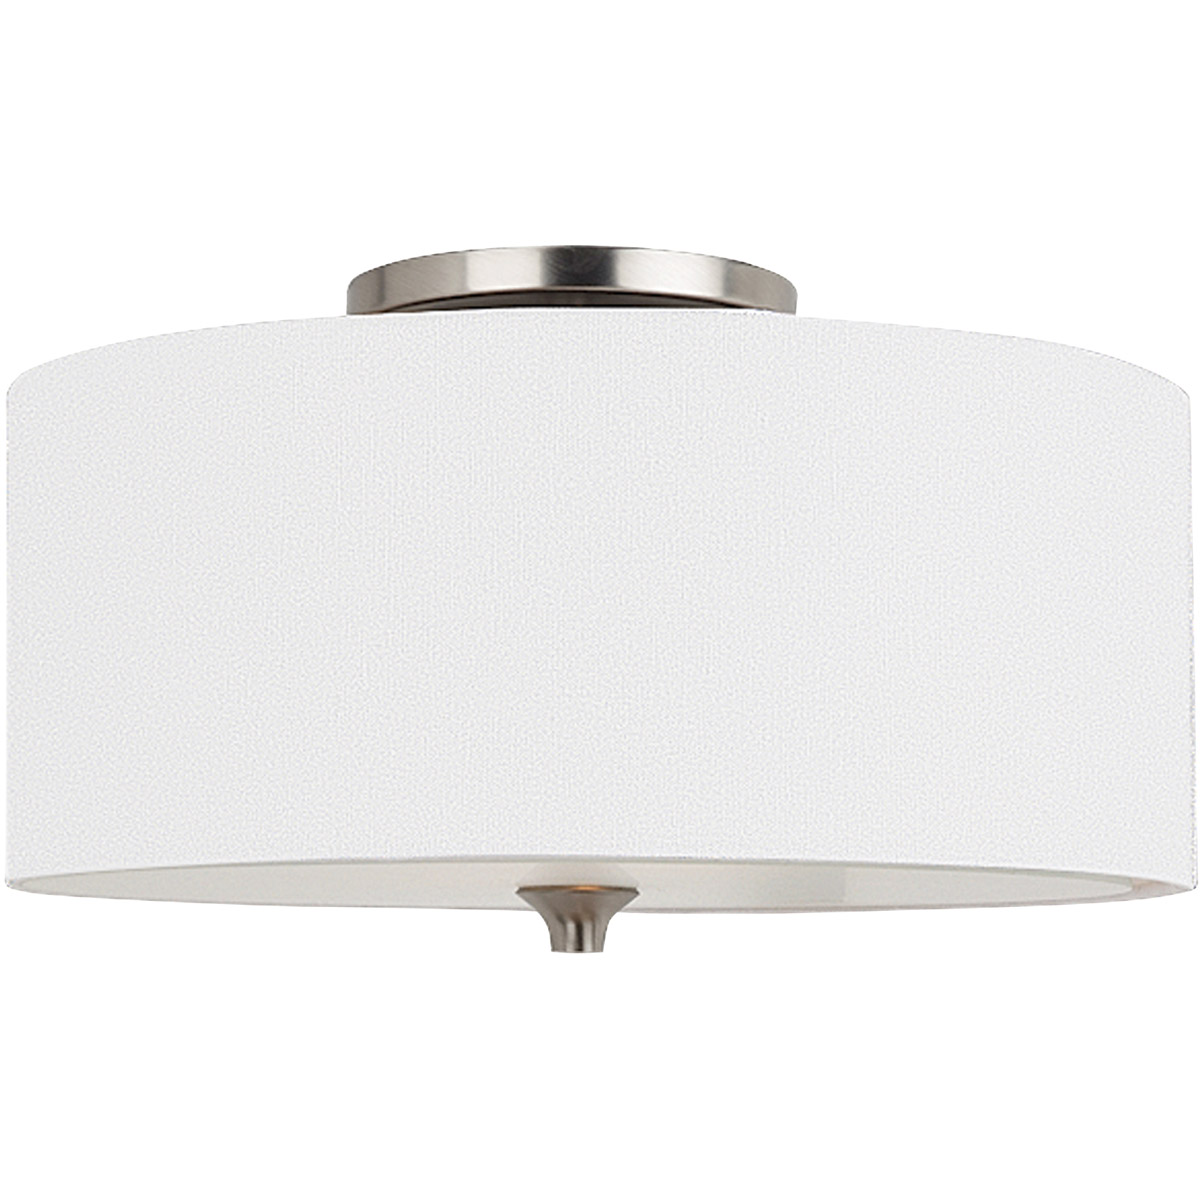 Sea Gull Lighting Stirling 2 Light Flush Mount in Brushed Nickel 75952-962 photo